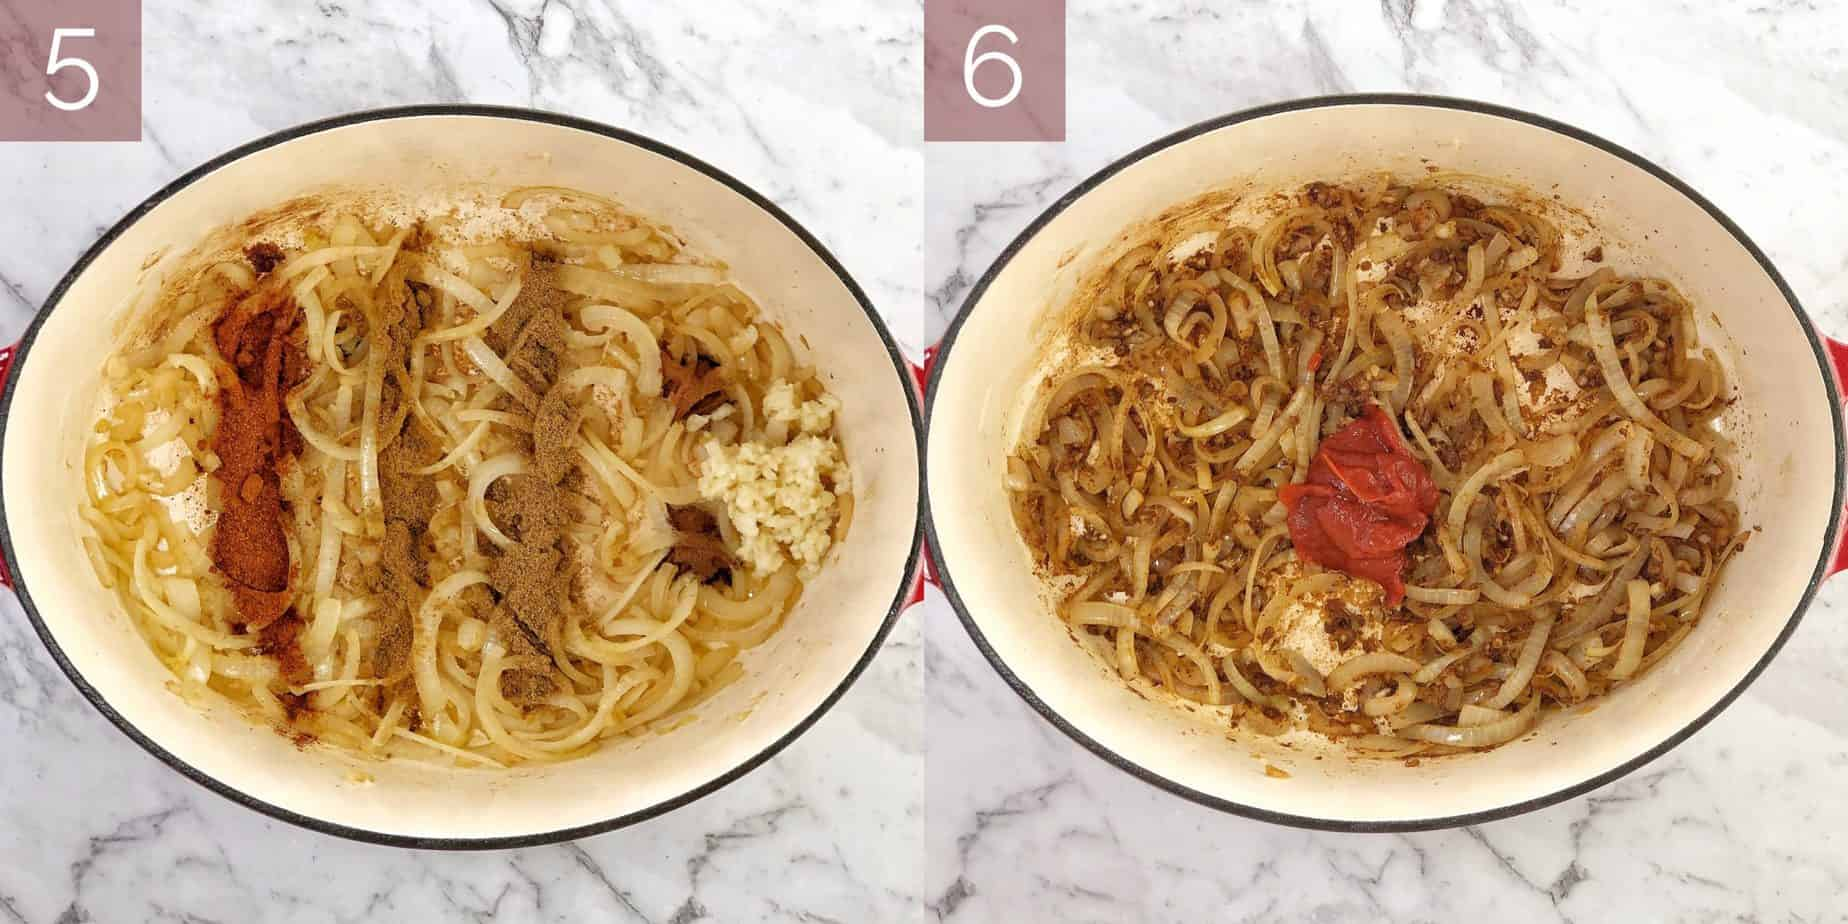 photos showing process to cook recipe